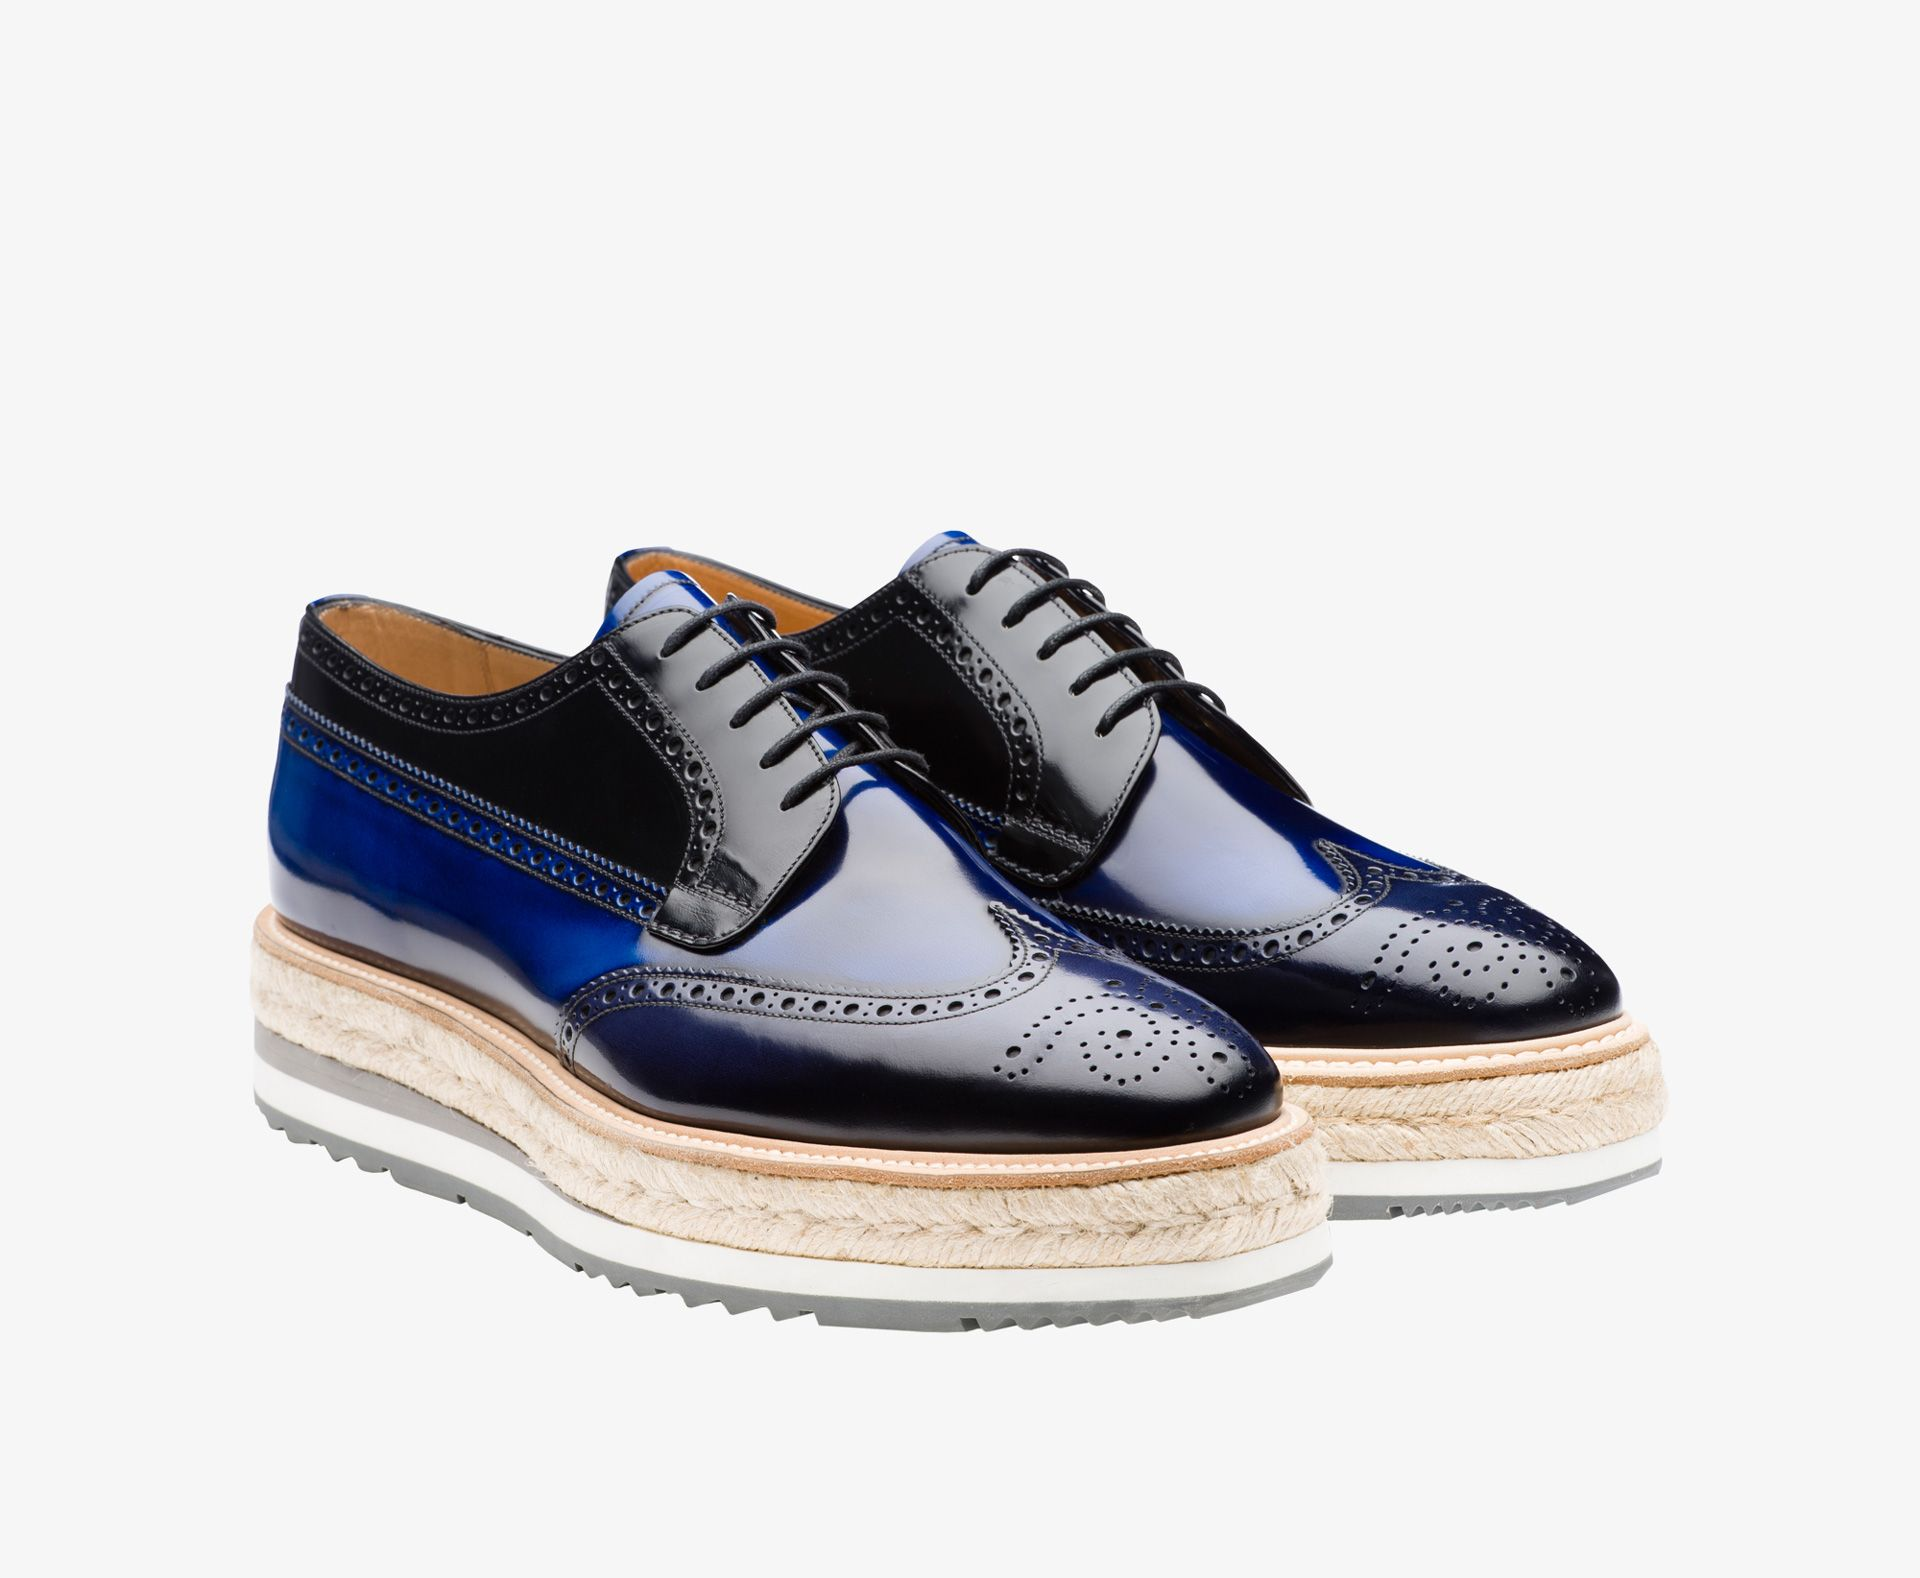 Leather Derby Shoes Leather Boat Shoes Monk Strap Shoes Leather Chelsea Boots